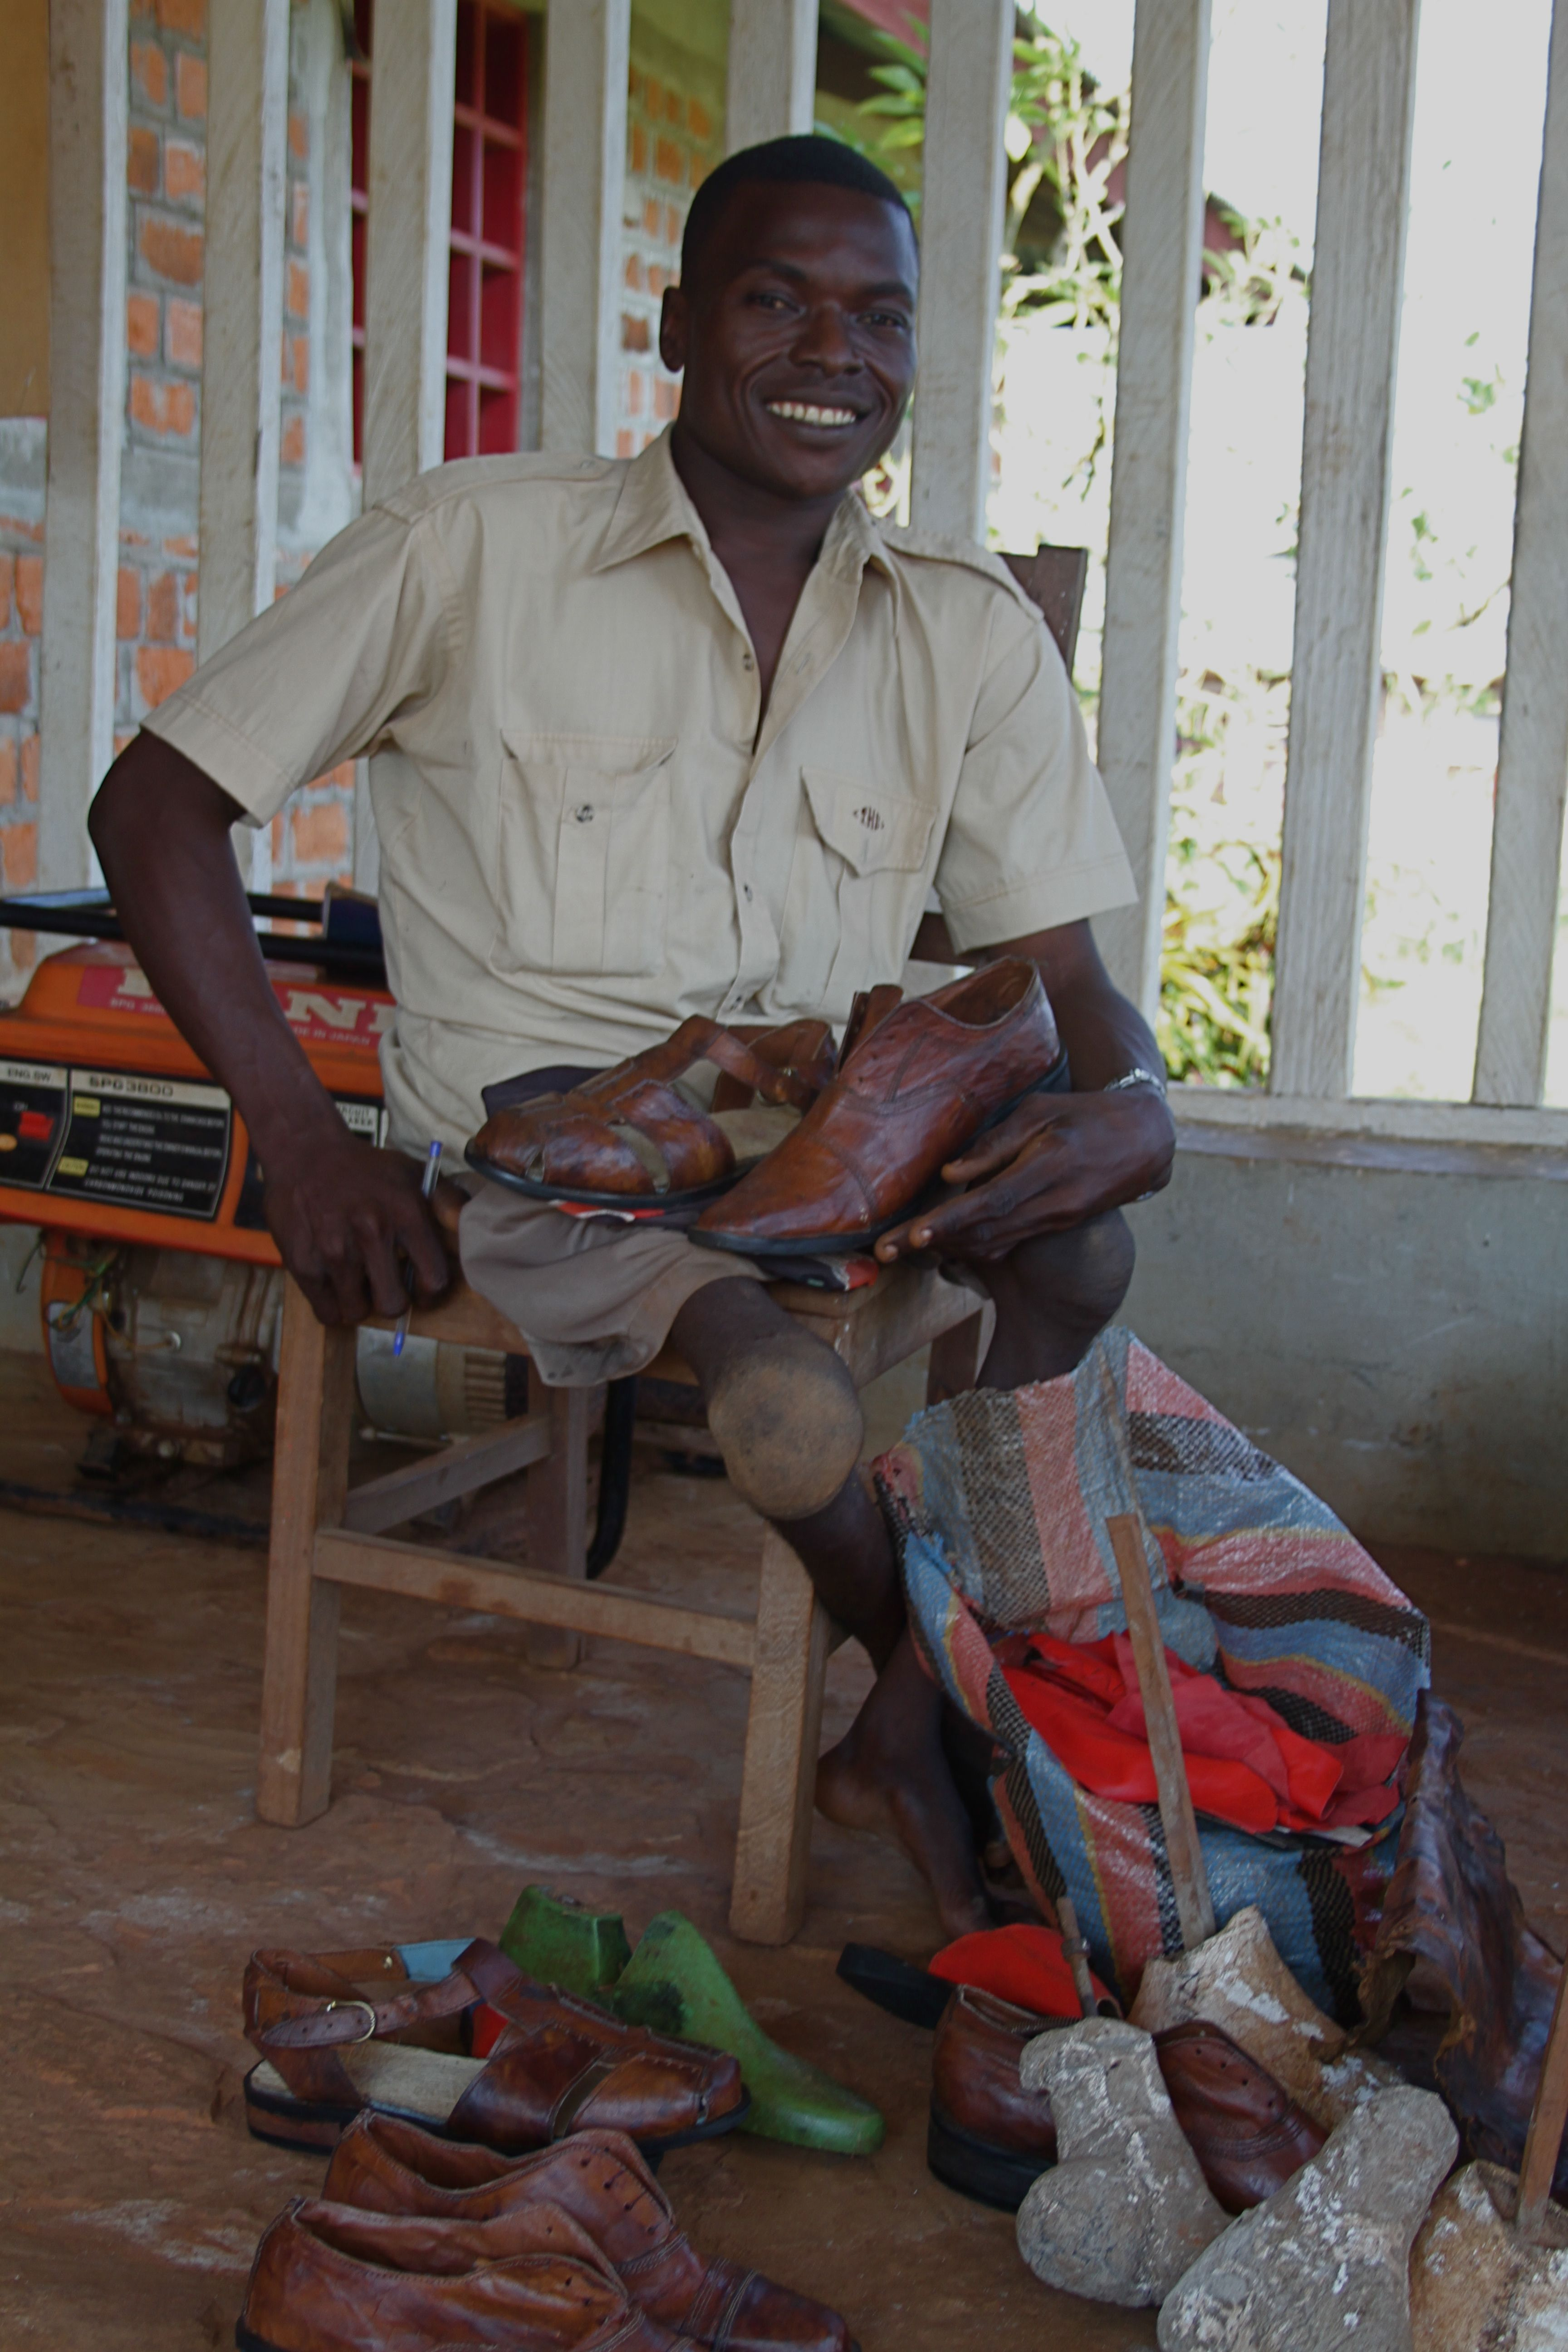 Balia, the shoemaker in Congo, Africa by Naomi Norris